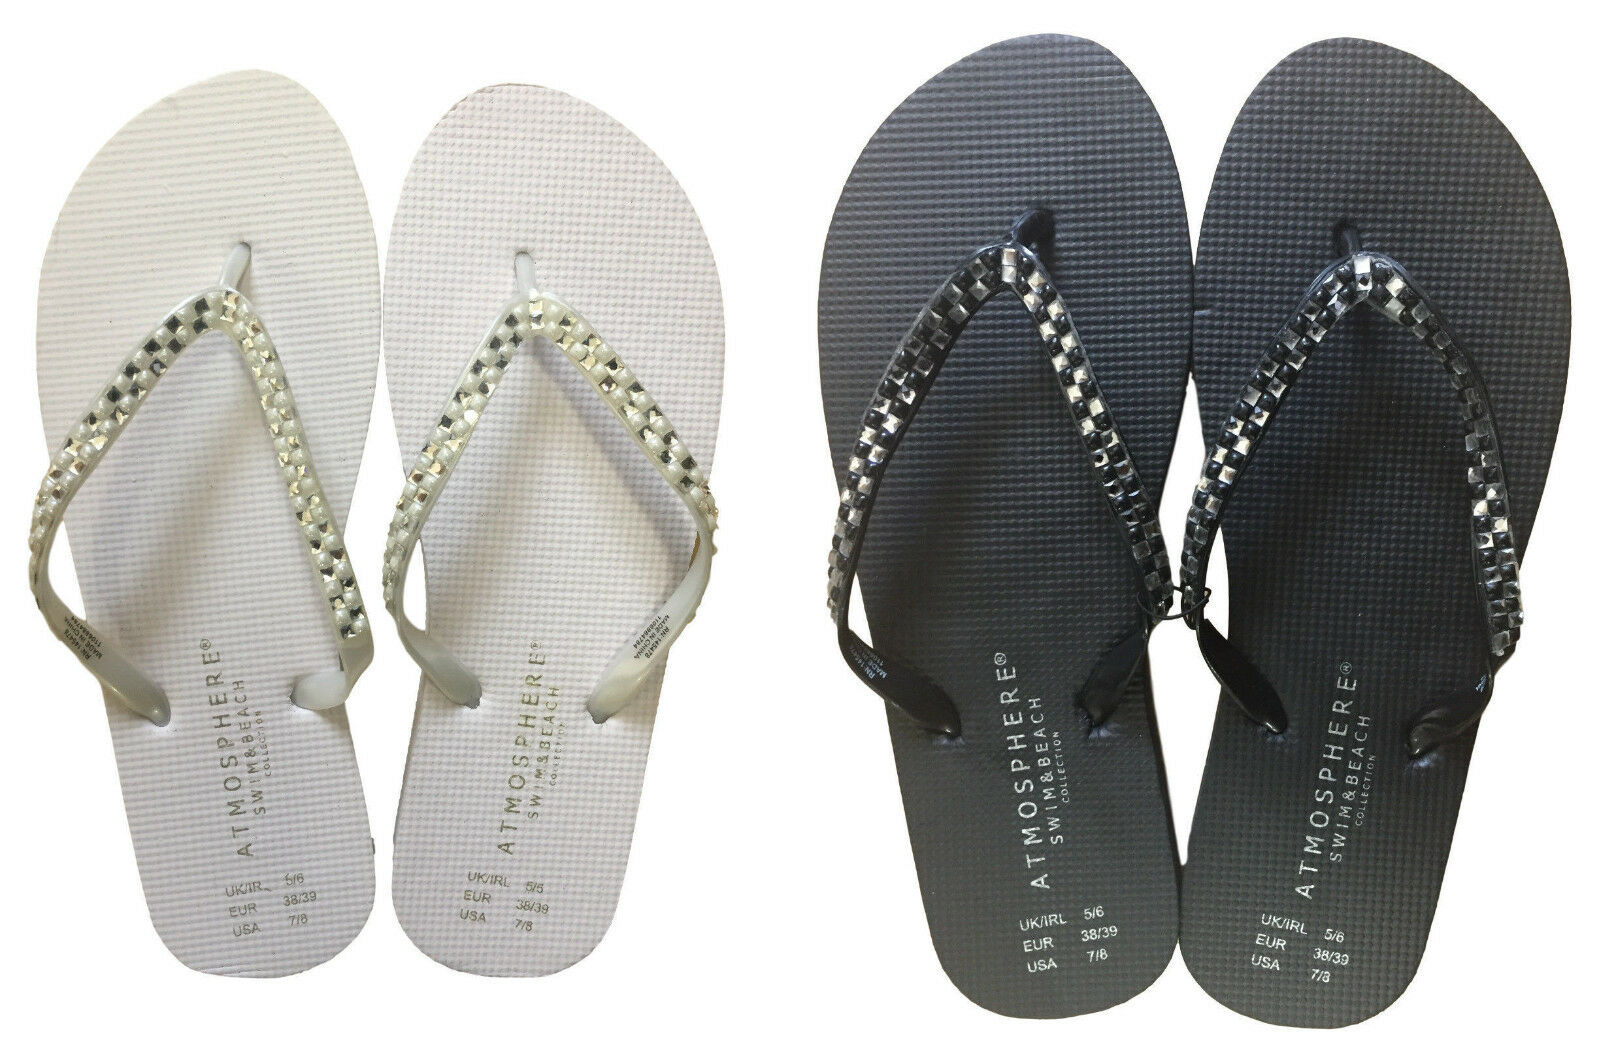 46a1350a5 Wholesale Job Lot Of 30 X Ladies Flip Flops Summer Sandals Swim Beach 1 of  3Only 0 available ...